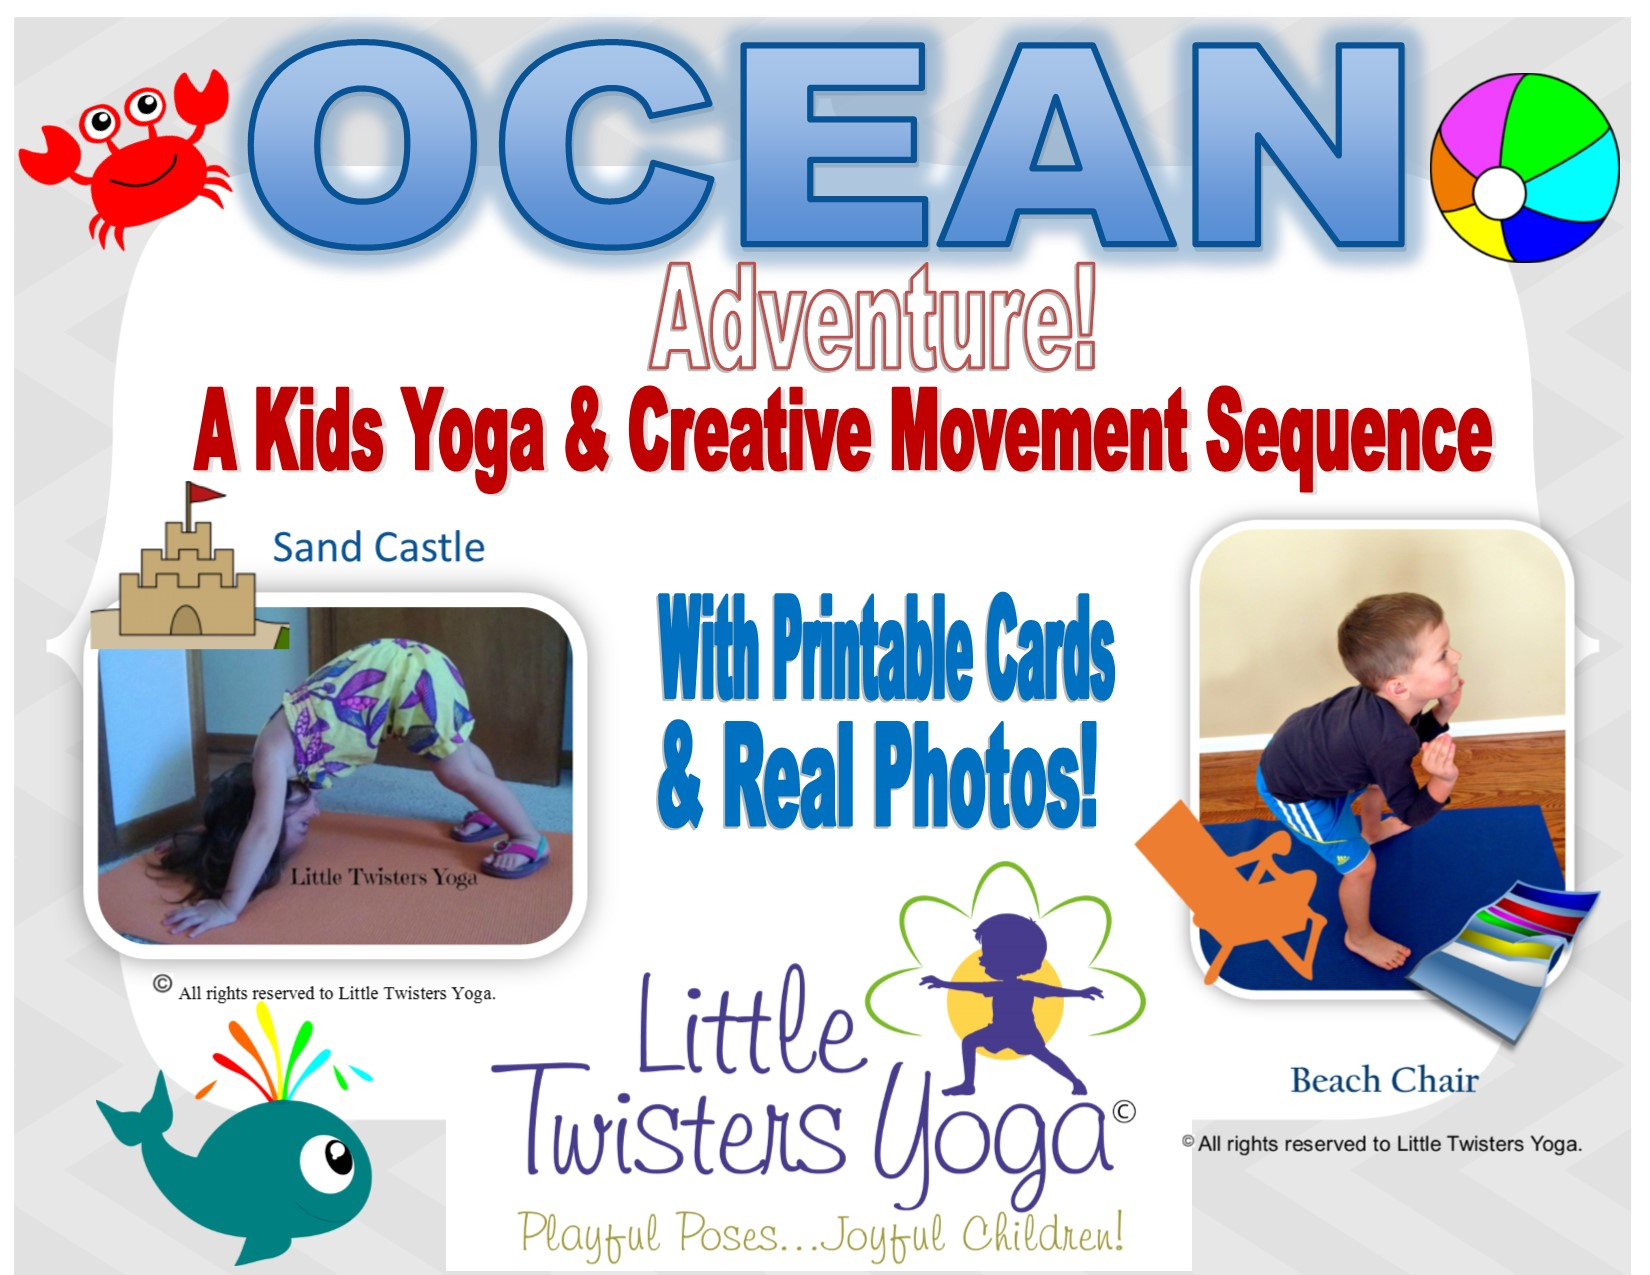 Online Store Little Twisters Yoga Emotional Wellness